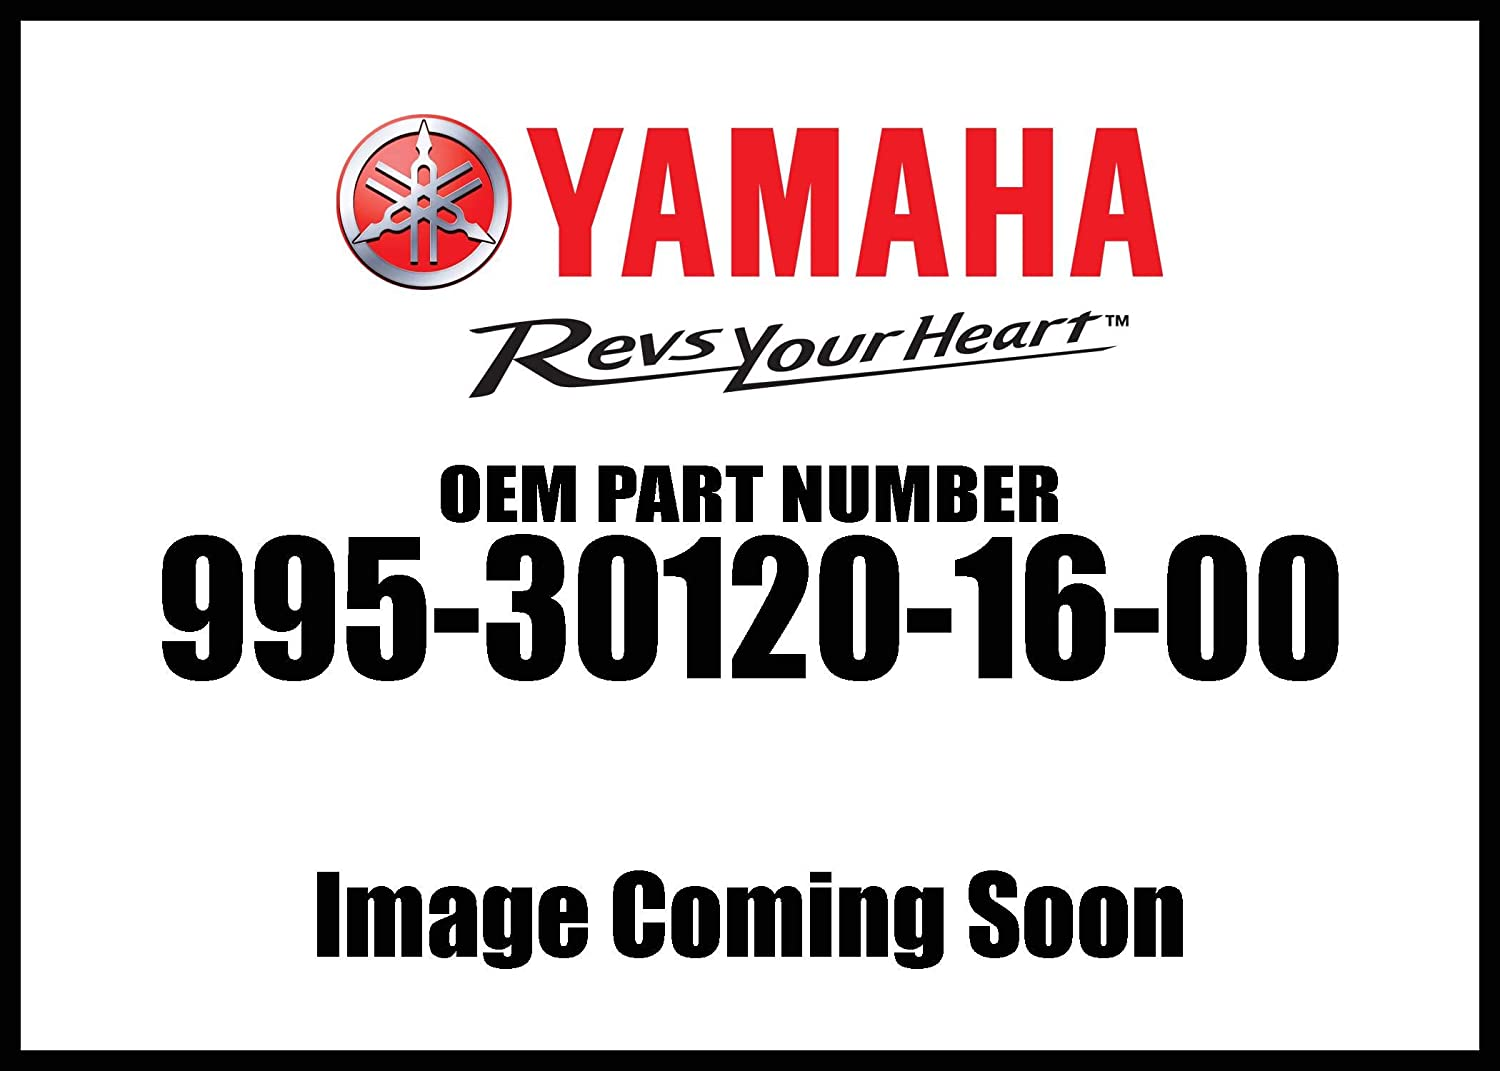 Yamaha 99530-12016-00 Pin, Dowel; 995301201600 Made by Yamaha